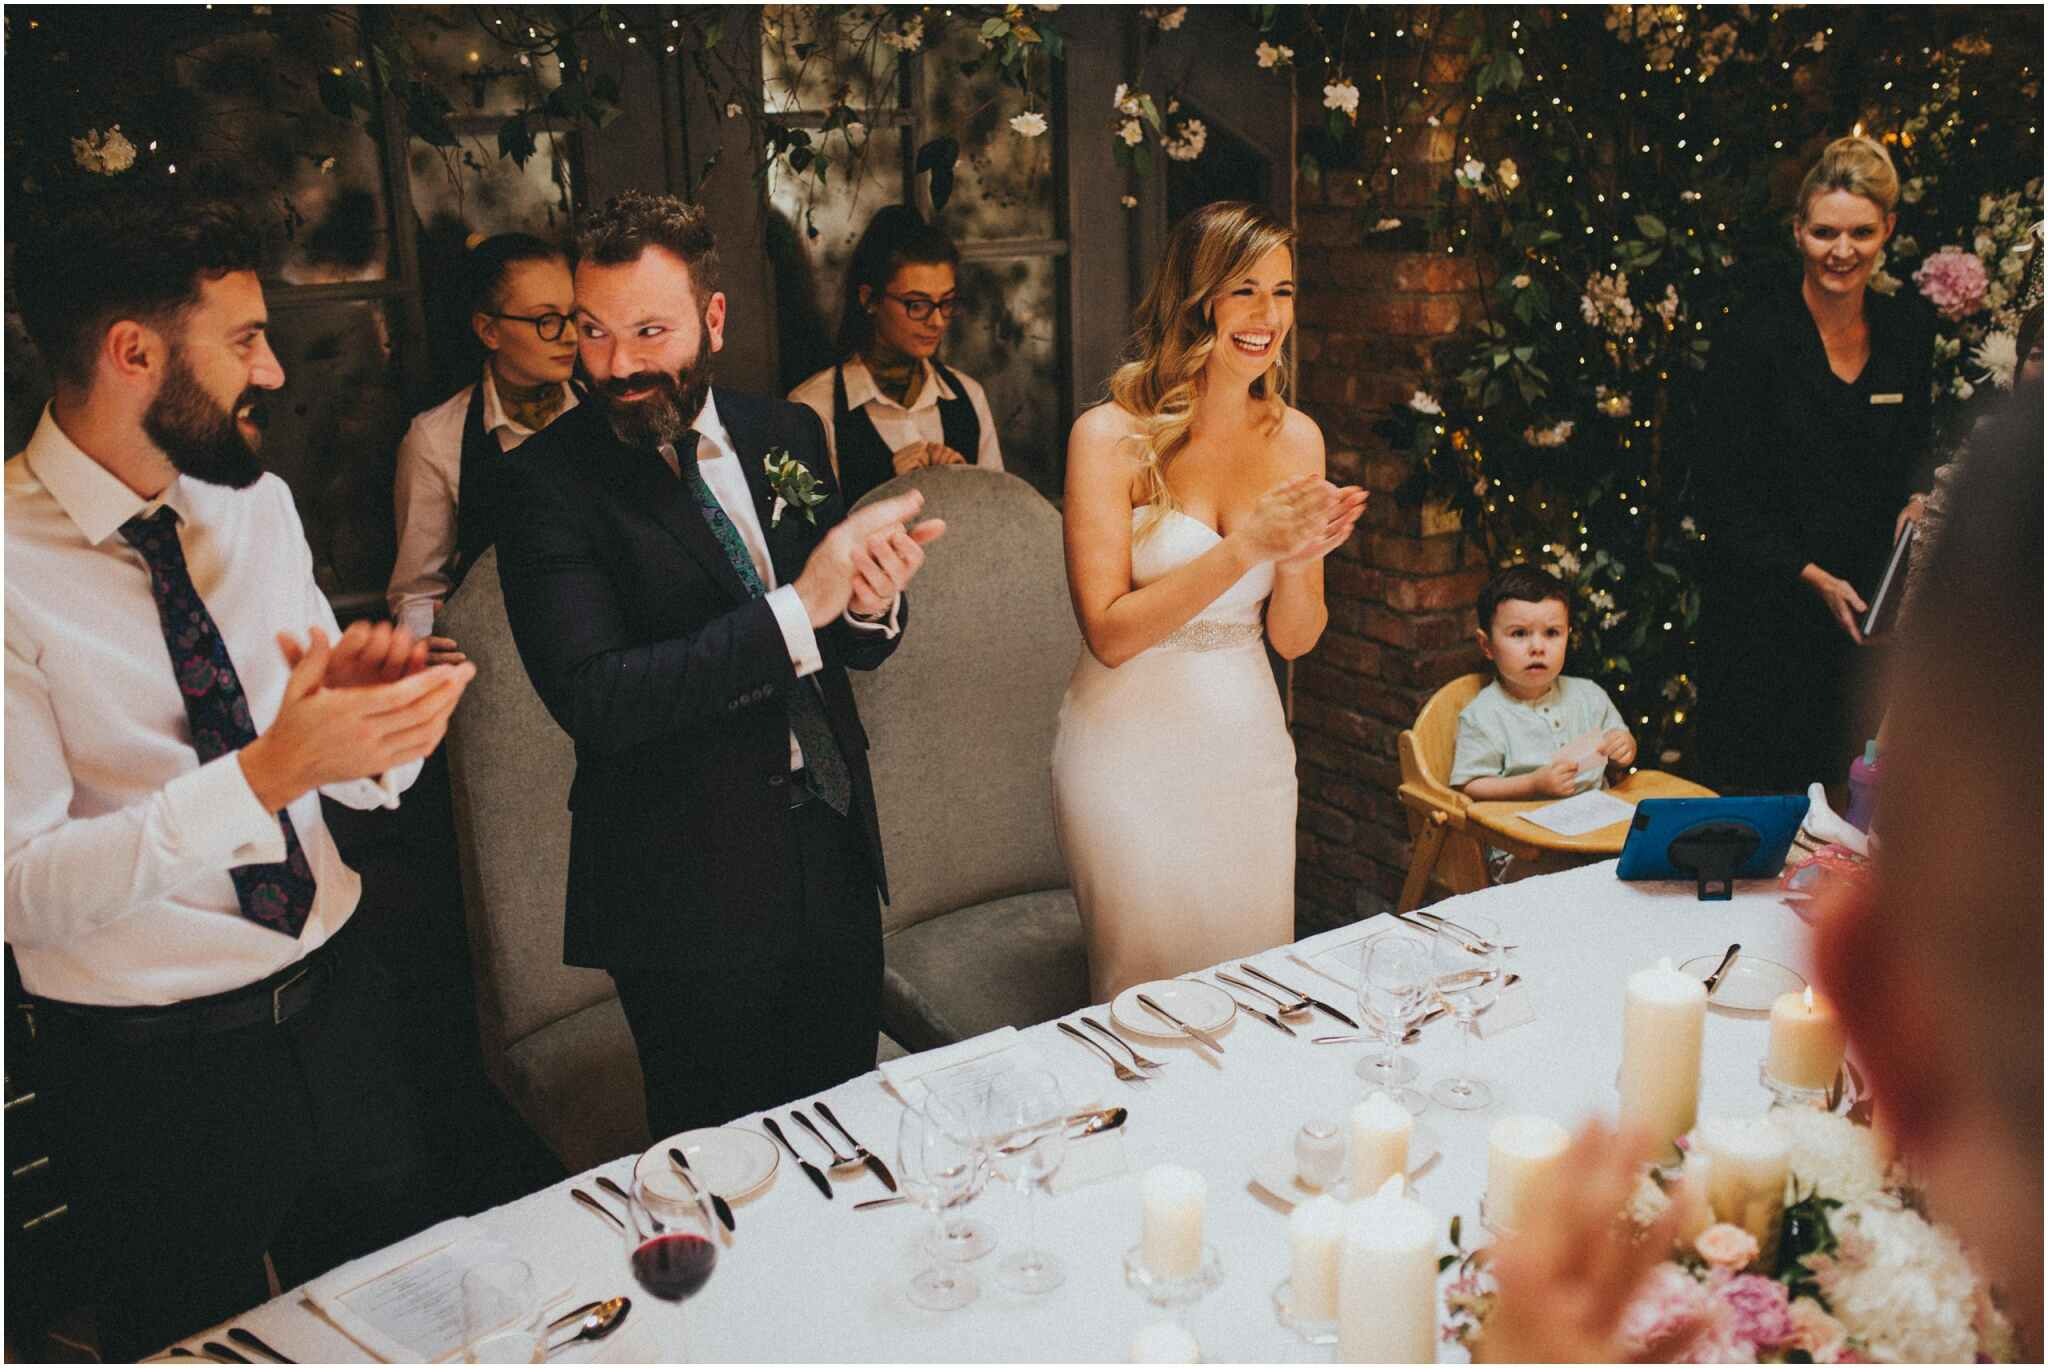 ballymagarvey village wedding 00128 - Fun and Relaxed wedding and elopement photography in Ireland, perfect for adventurous and outdoorsy couples